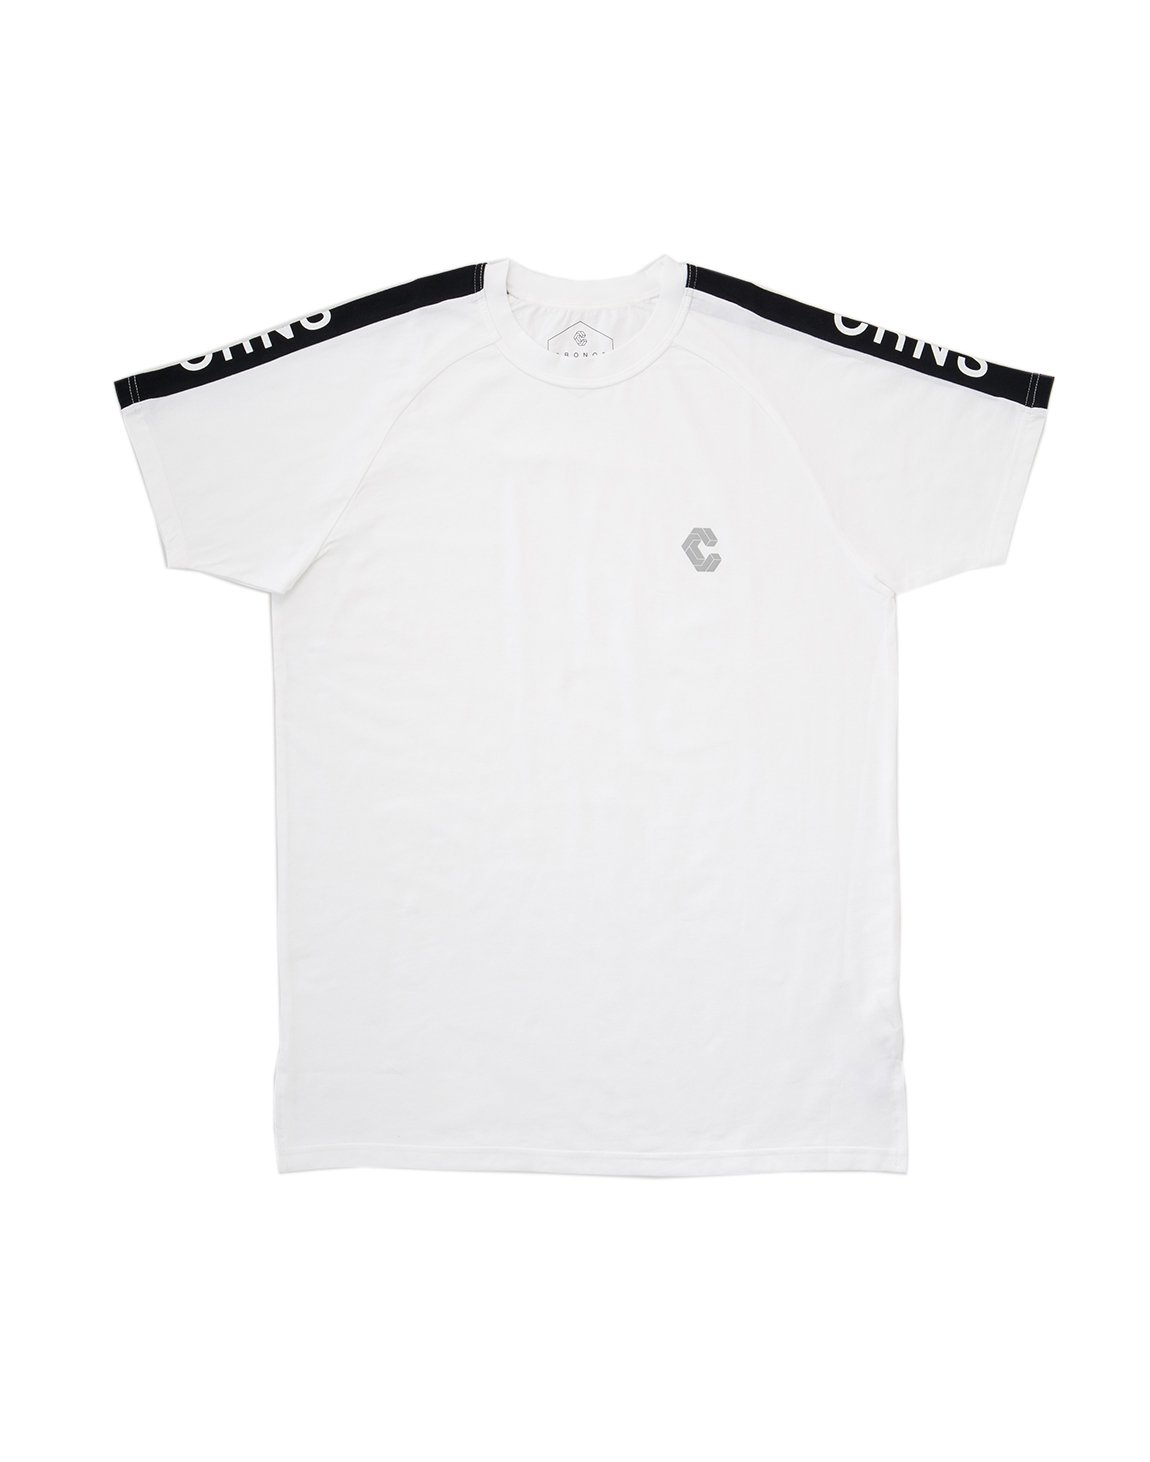 <img class='new_mark_img1' src='https://img.shop-pro.jp/img/new/icons55.gif' style='border:none;display:inline;margin:0px;padding:0px;width:auto;' />CRNS SHOULDER LOGO FIT T-SHIRTS 【WHITE】